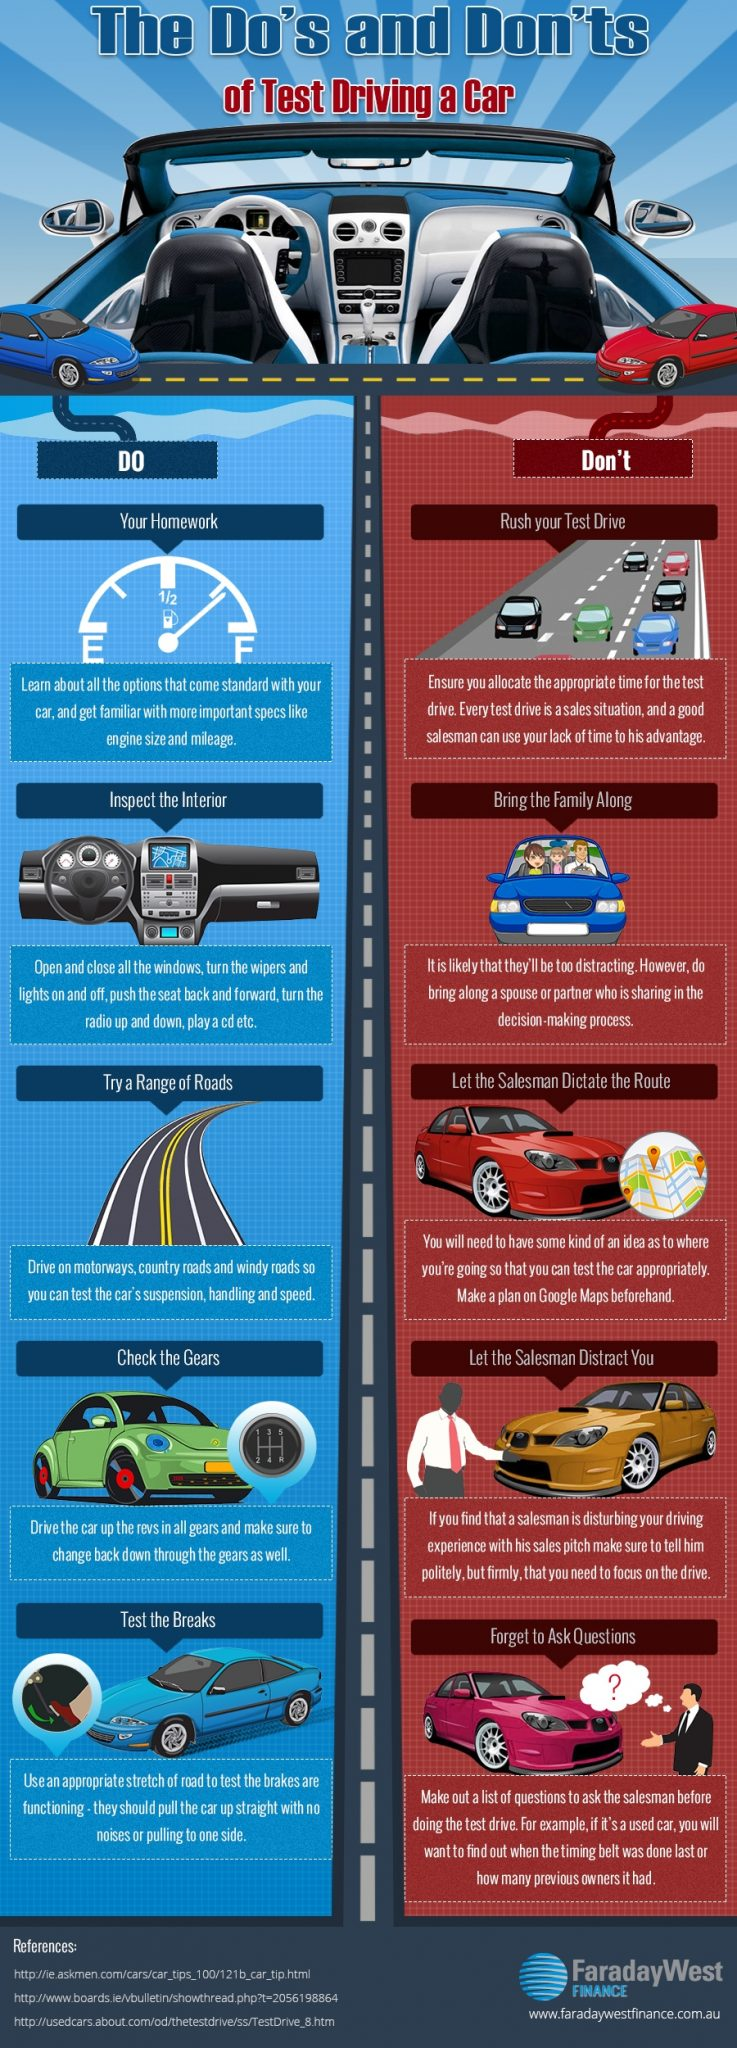 Valley Chevy - The Dos & Don'ts of Test Driving a Car Infographic